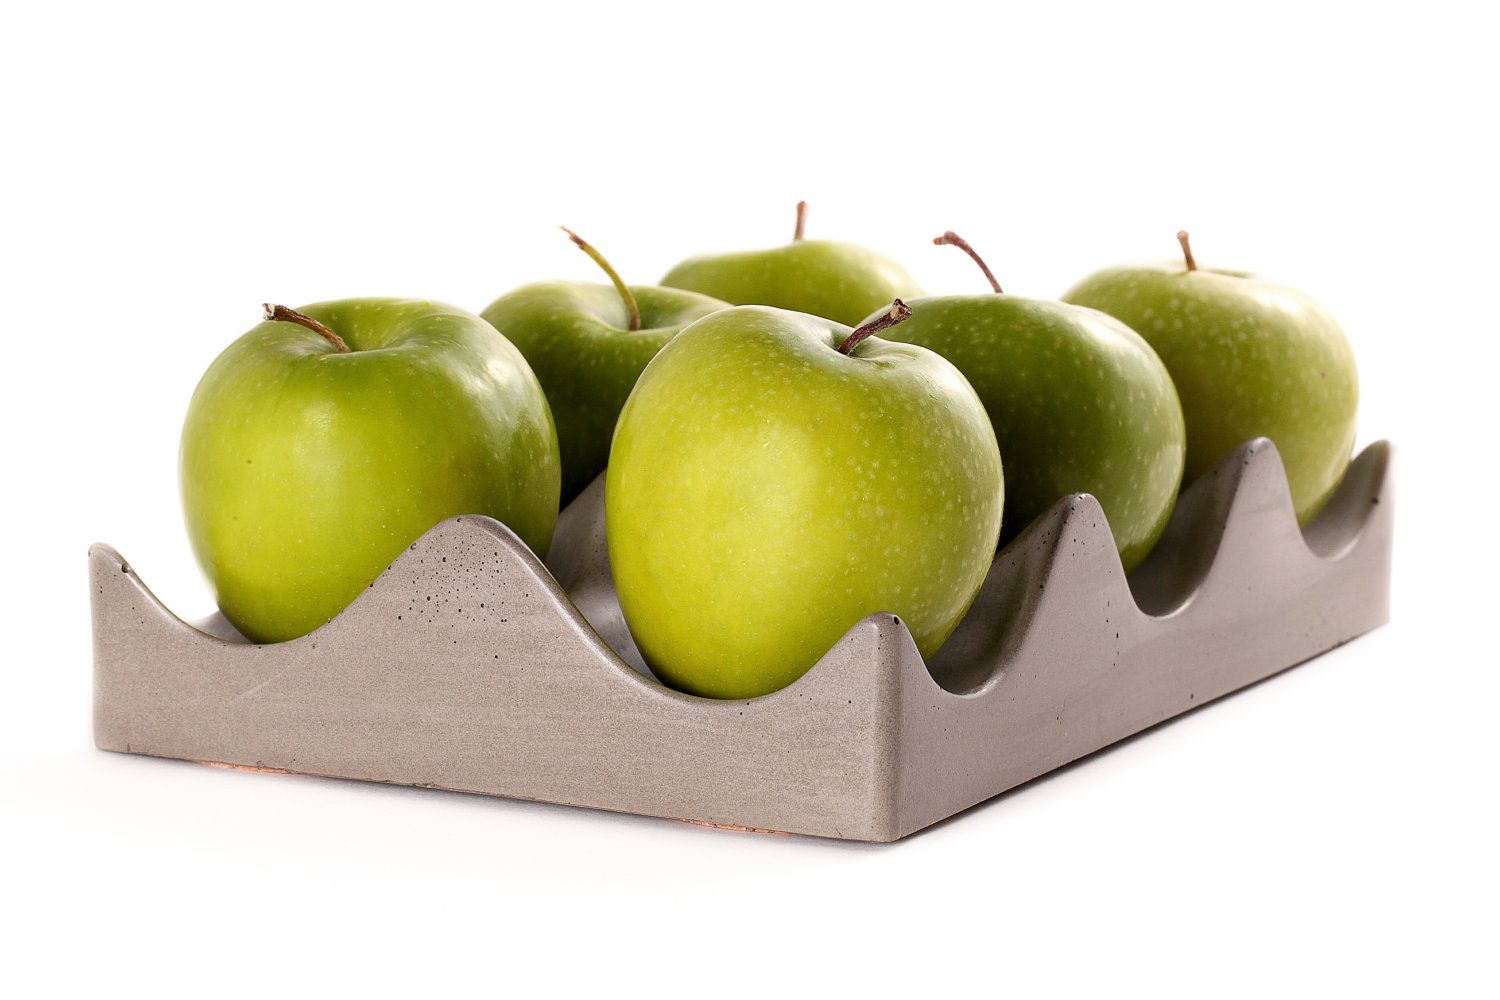 Home interior fruit plates concrete fruit tray bowl this item is not composed of typical